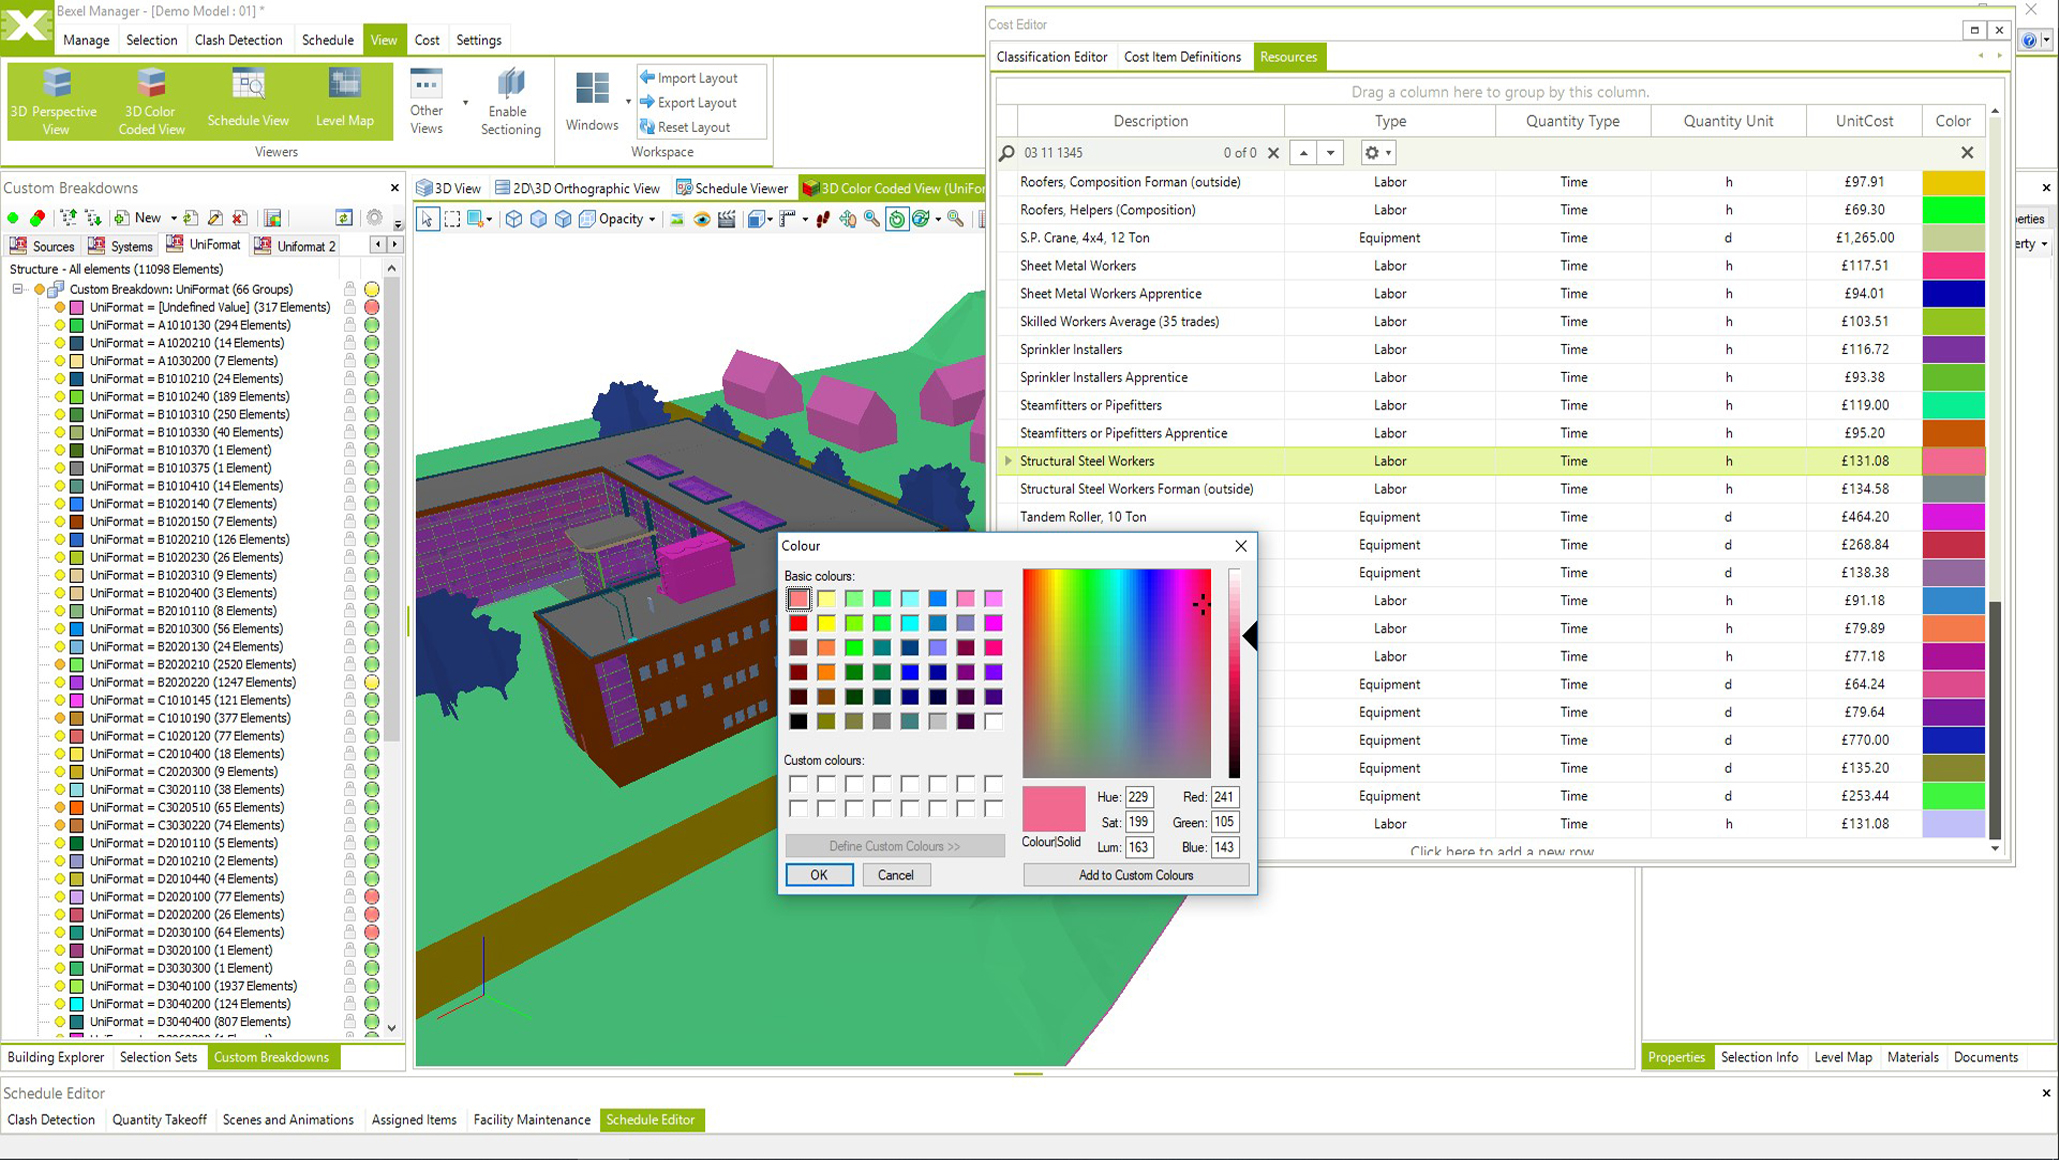 5D BIM Schedule color schemes, Visualize construction sequences using custom color schemes for elements, tasks and resources.